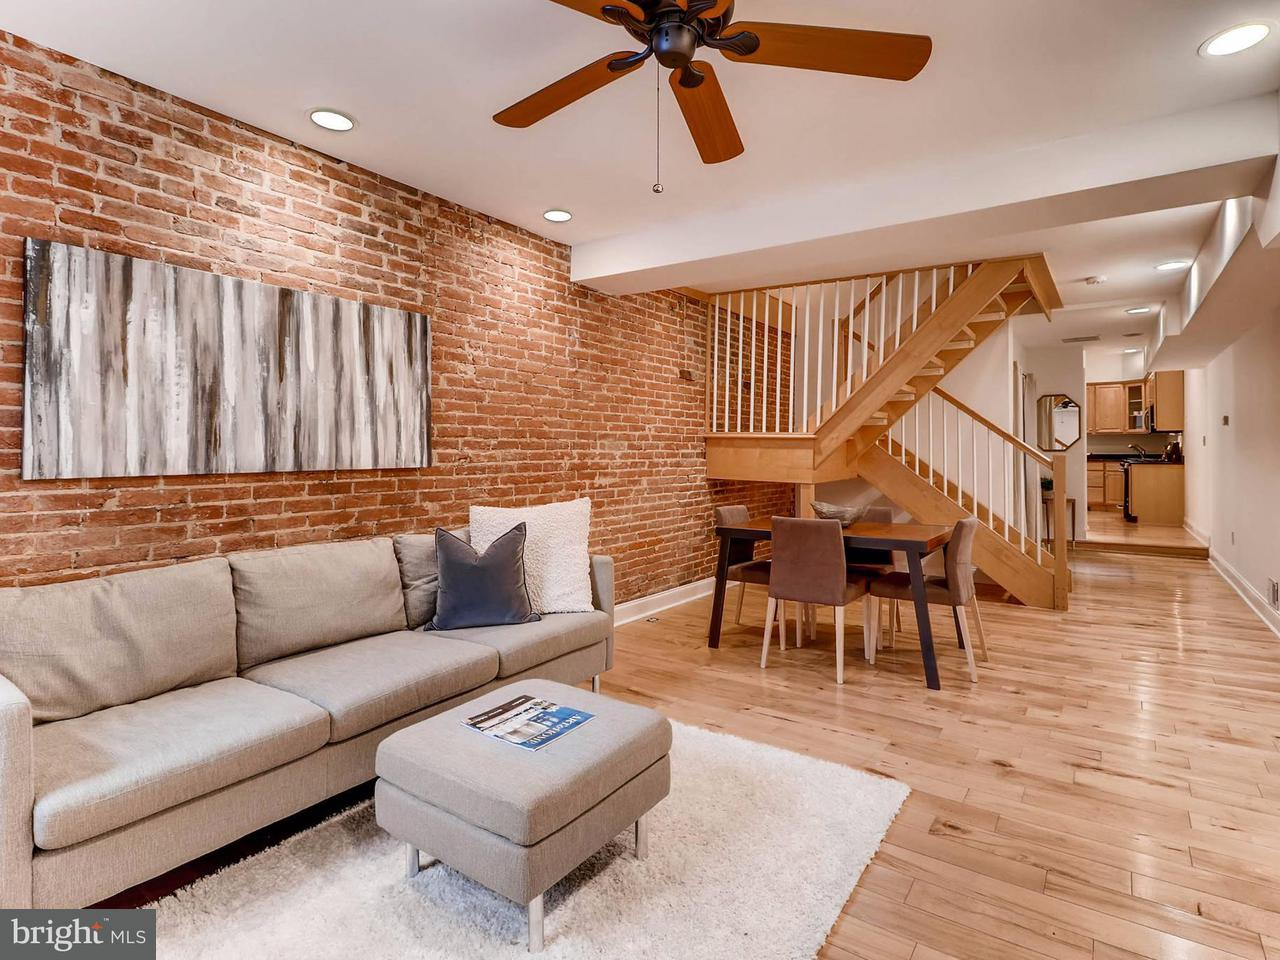 Other Residential for Rent at 411 Wolfe St Baltimore, Maryland 21231 United States